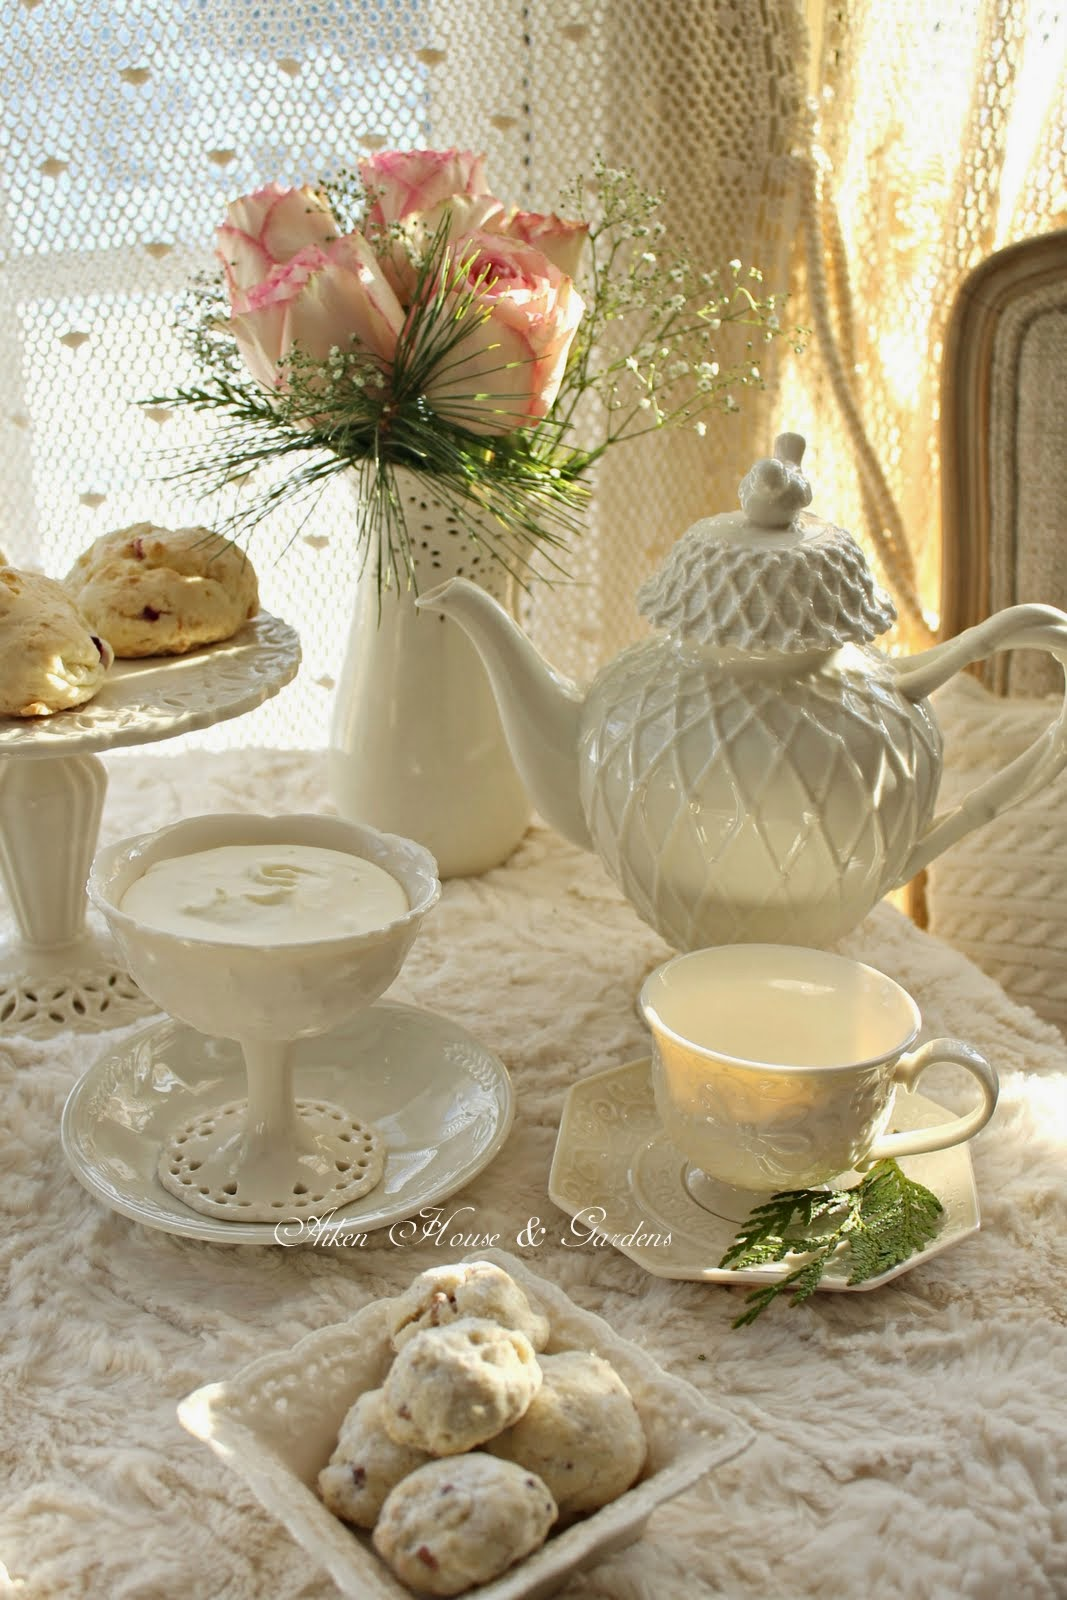 Welcome~ With The Cold Days Of Winter Still Upon Us I Am Enjoying Having  Tea By The Kitchen Bay Window That Overlooks Our Snow Covered Garden.